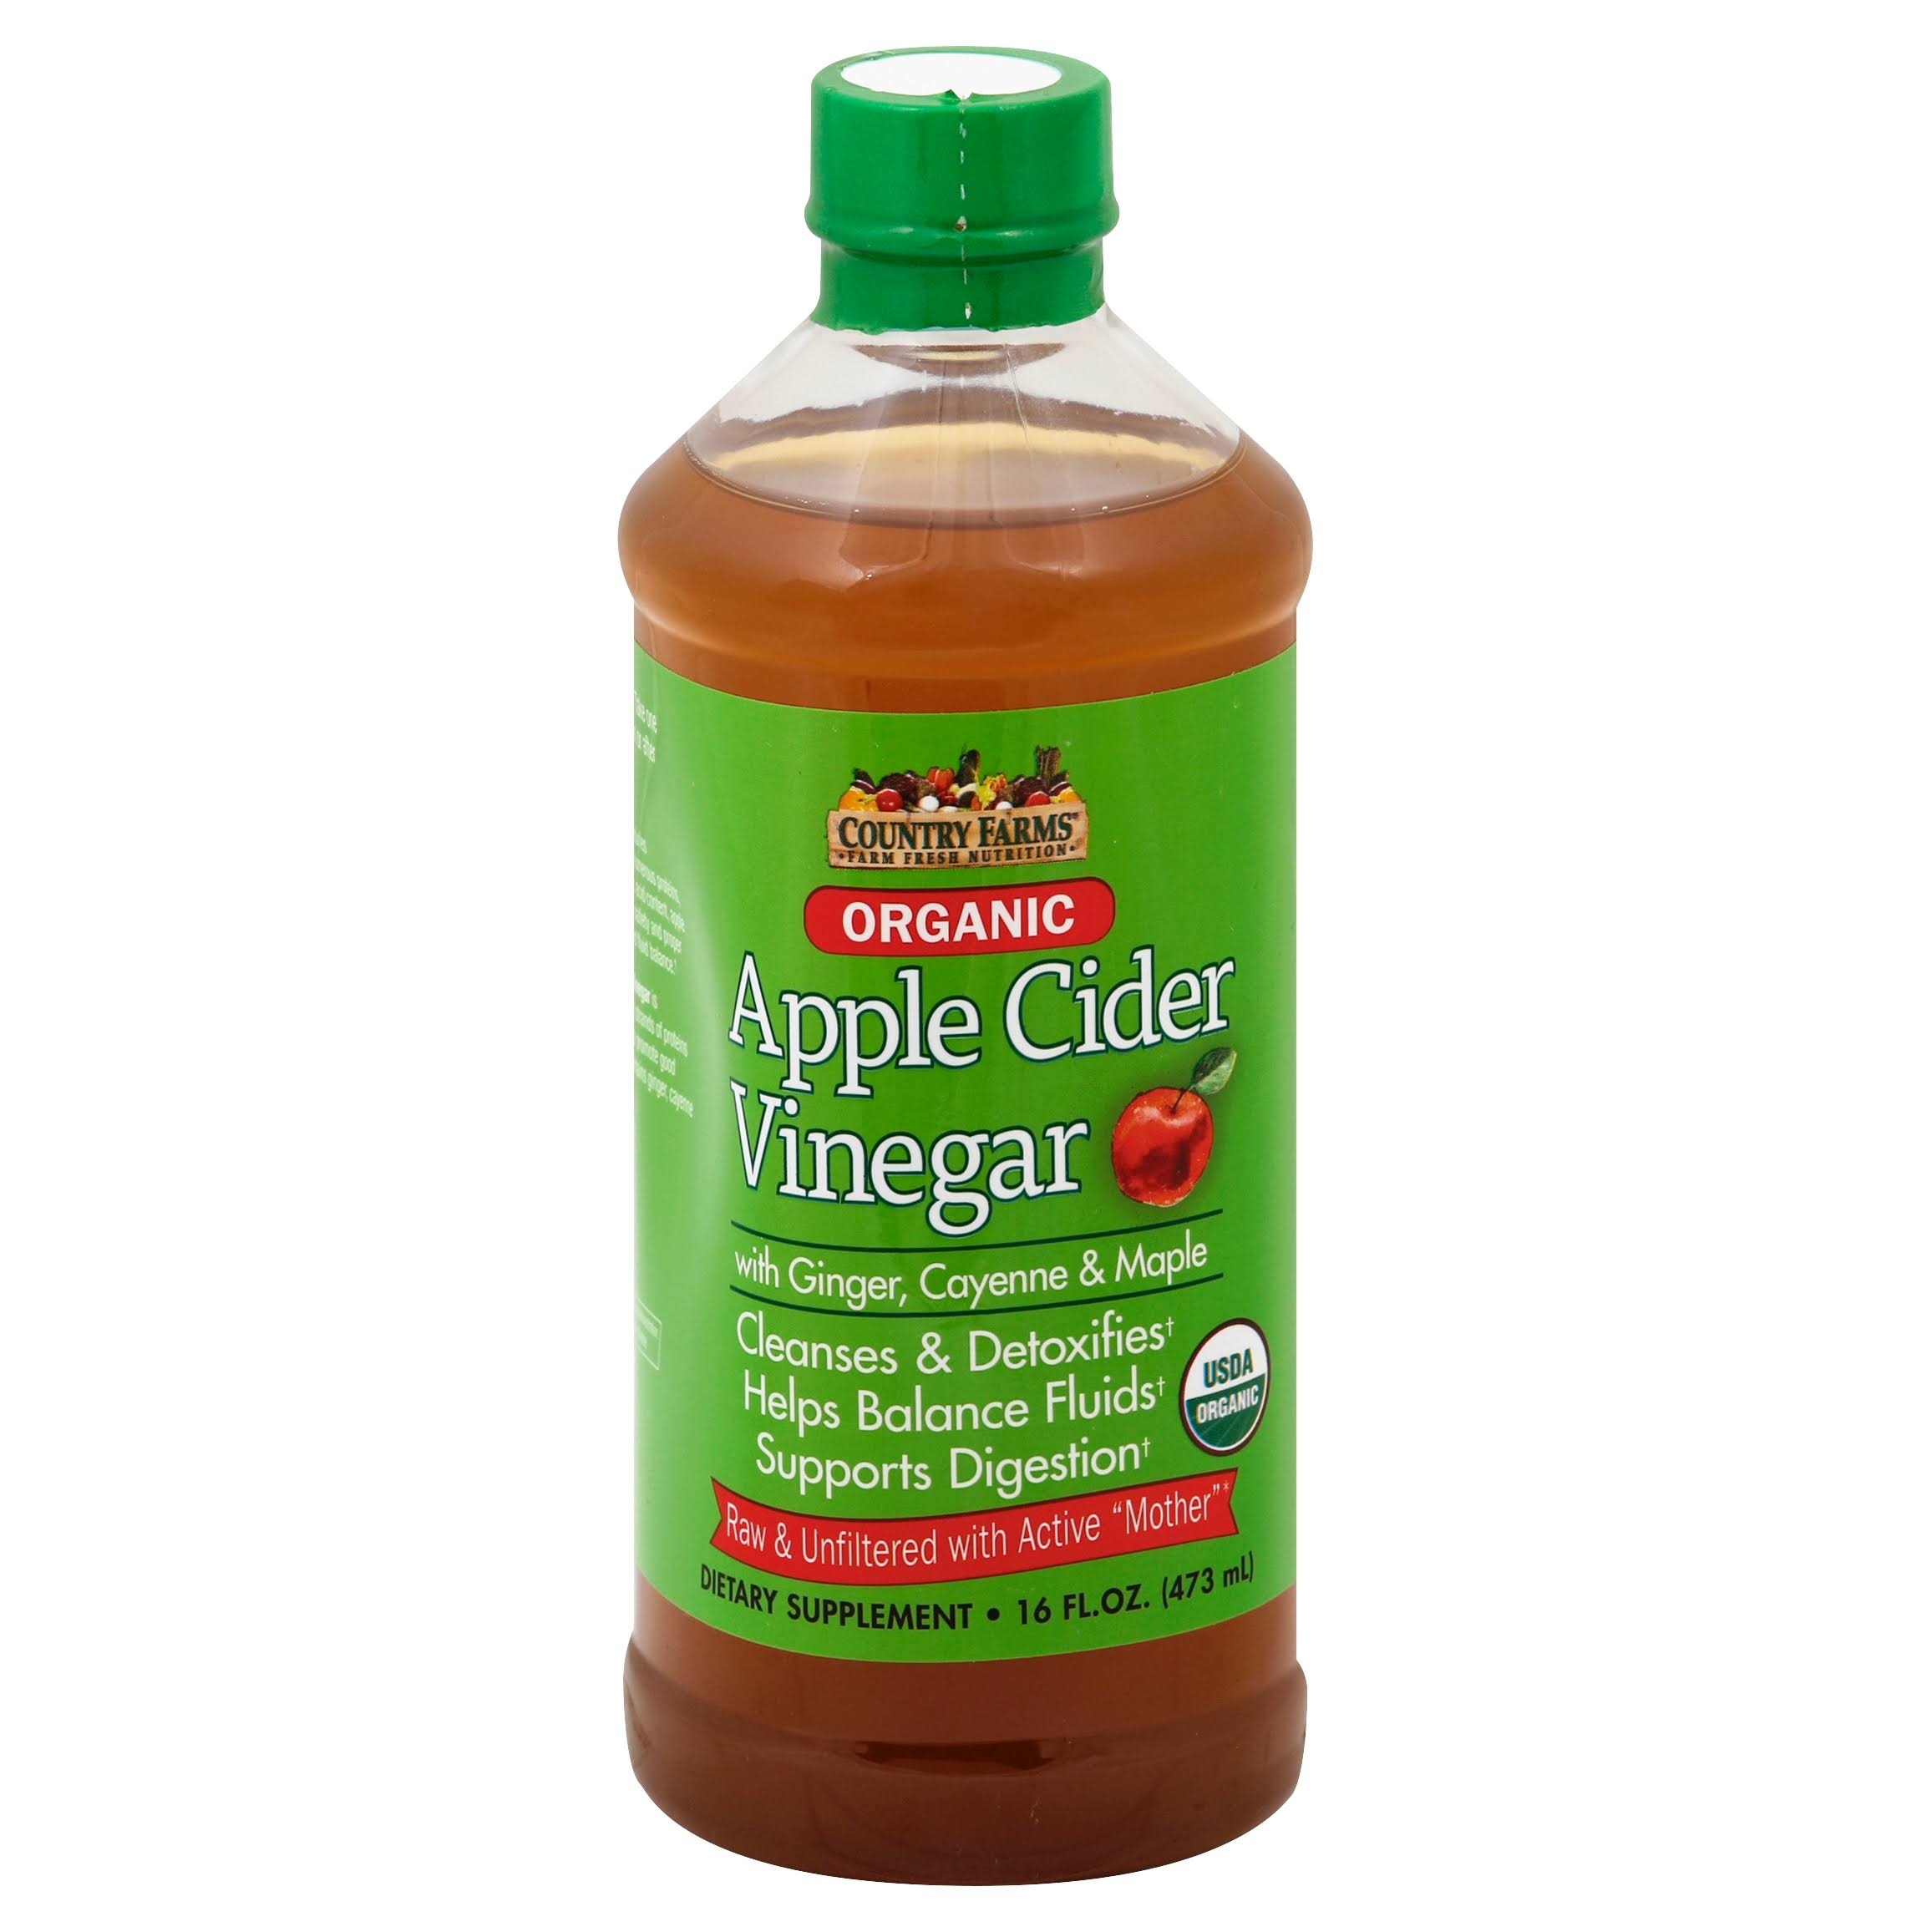 Country Farms Organic Apple Cider Vinegar Drink - 16oz